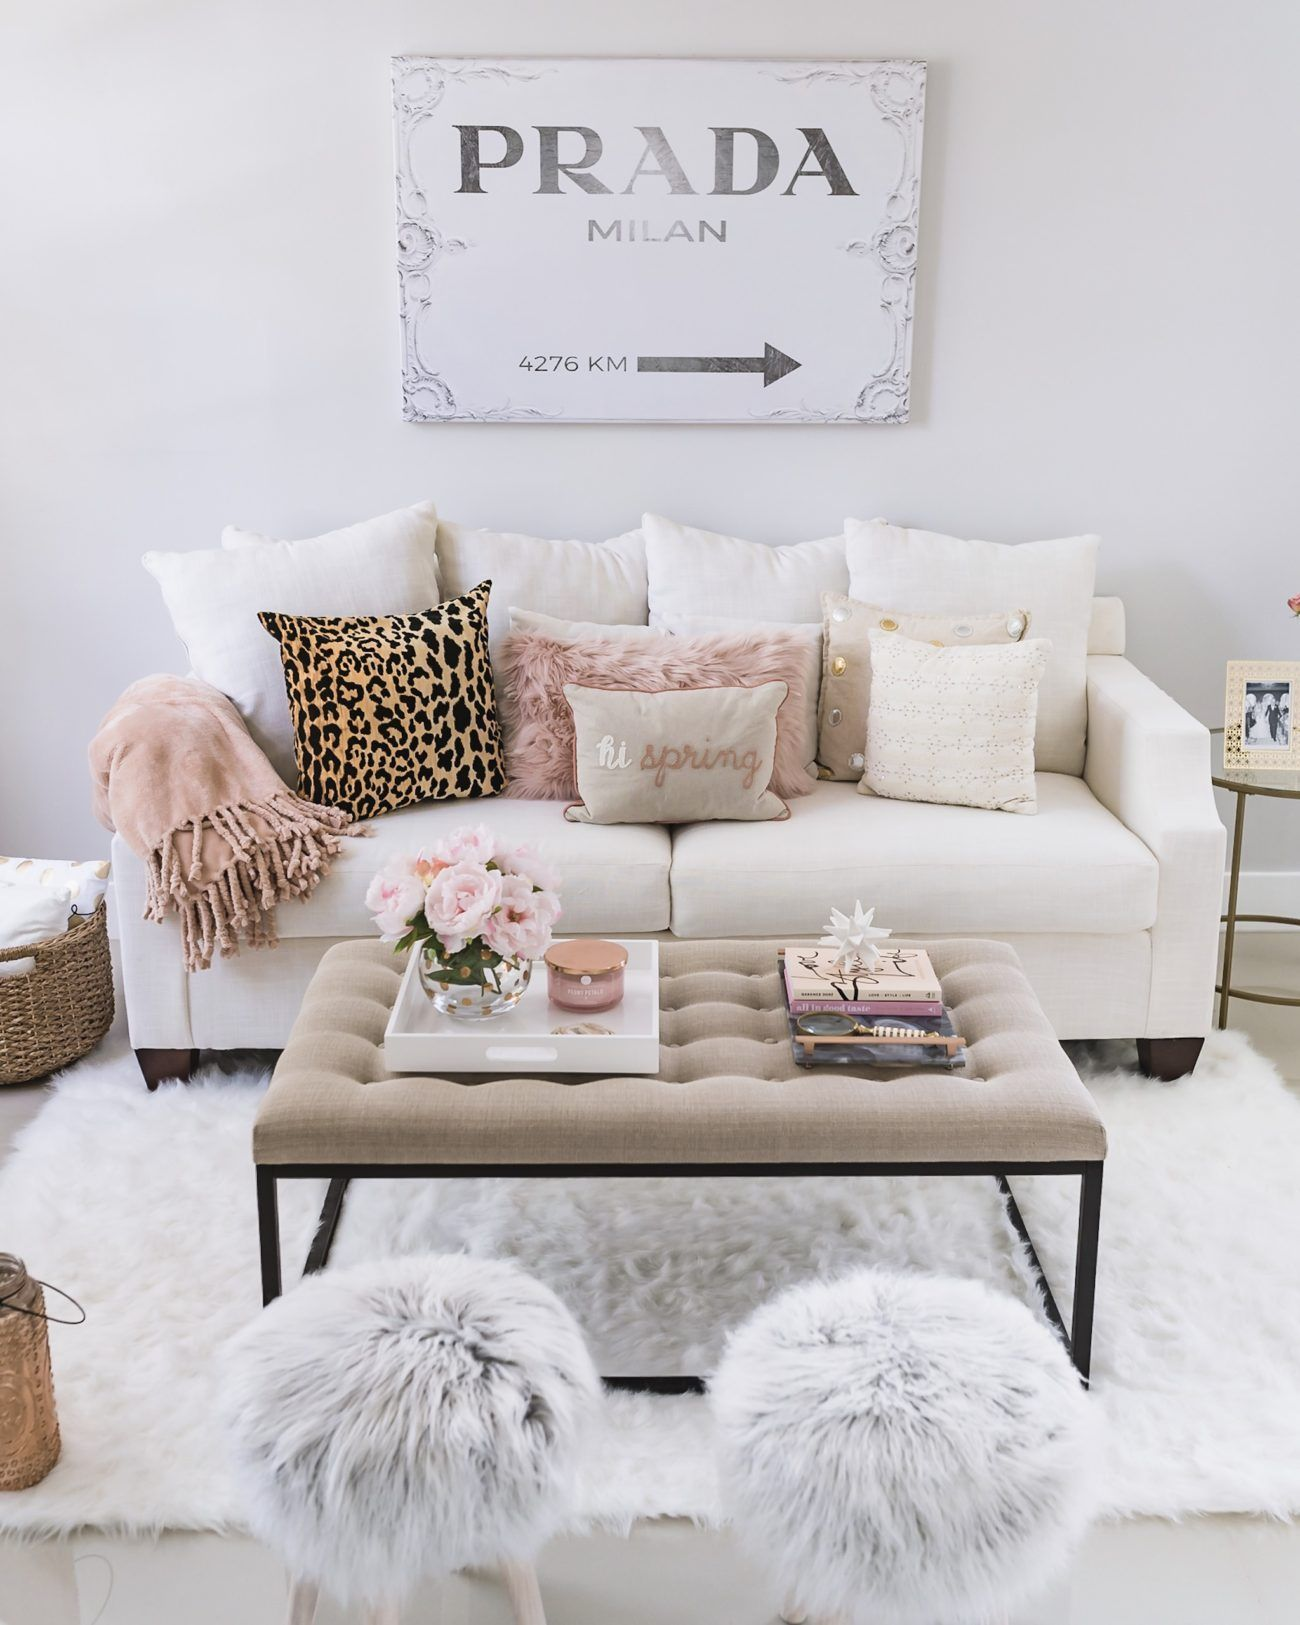 Spring Living Room Update 2017 - The | Pinterest | Fancy, Living ...